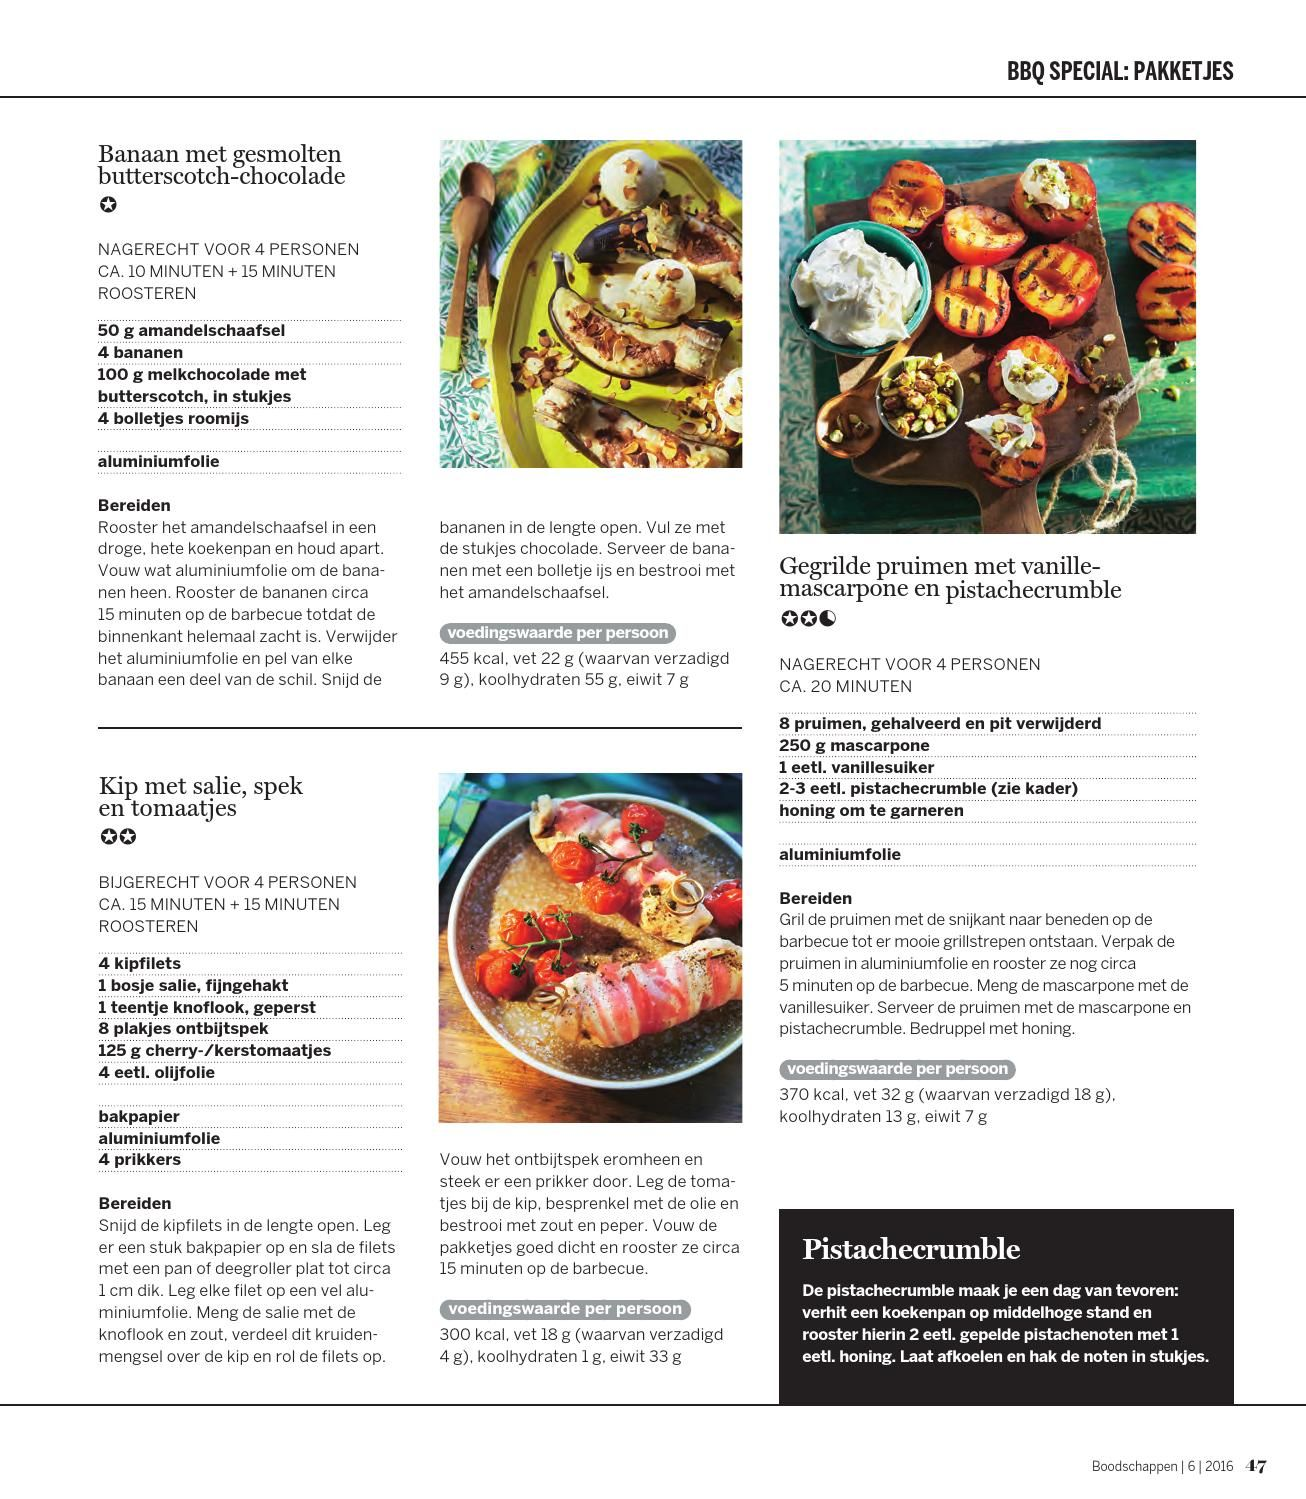 Bs0616 issuu by Boodschappen - issuu